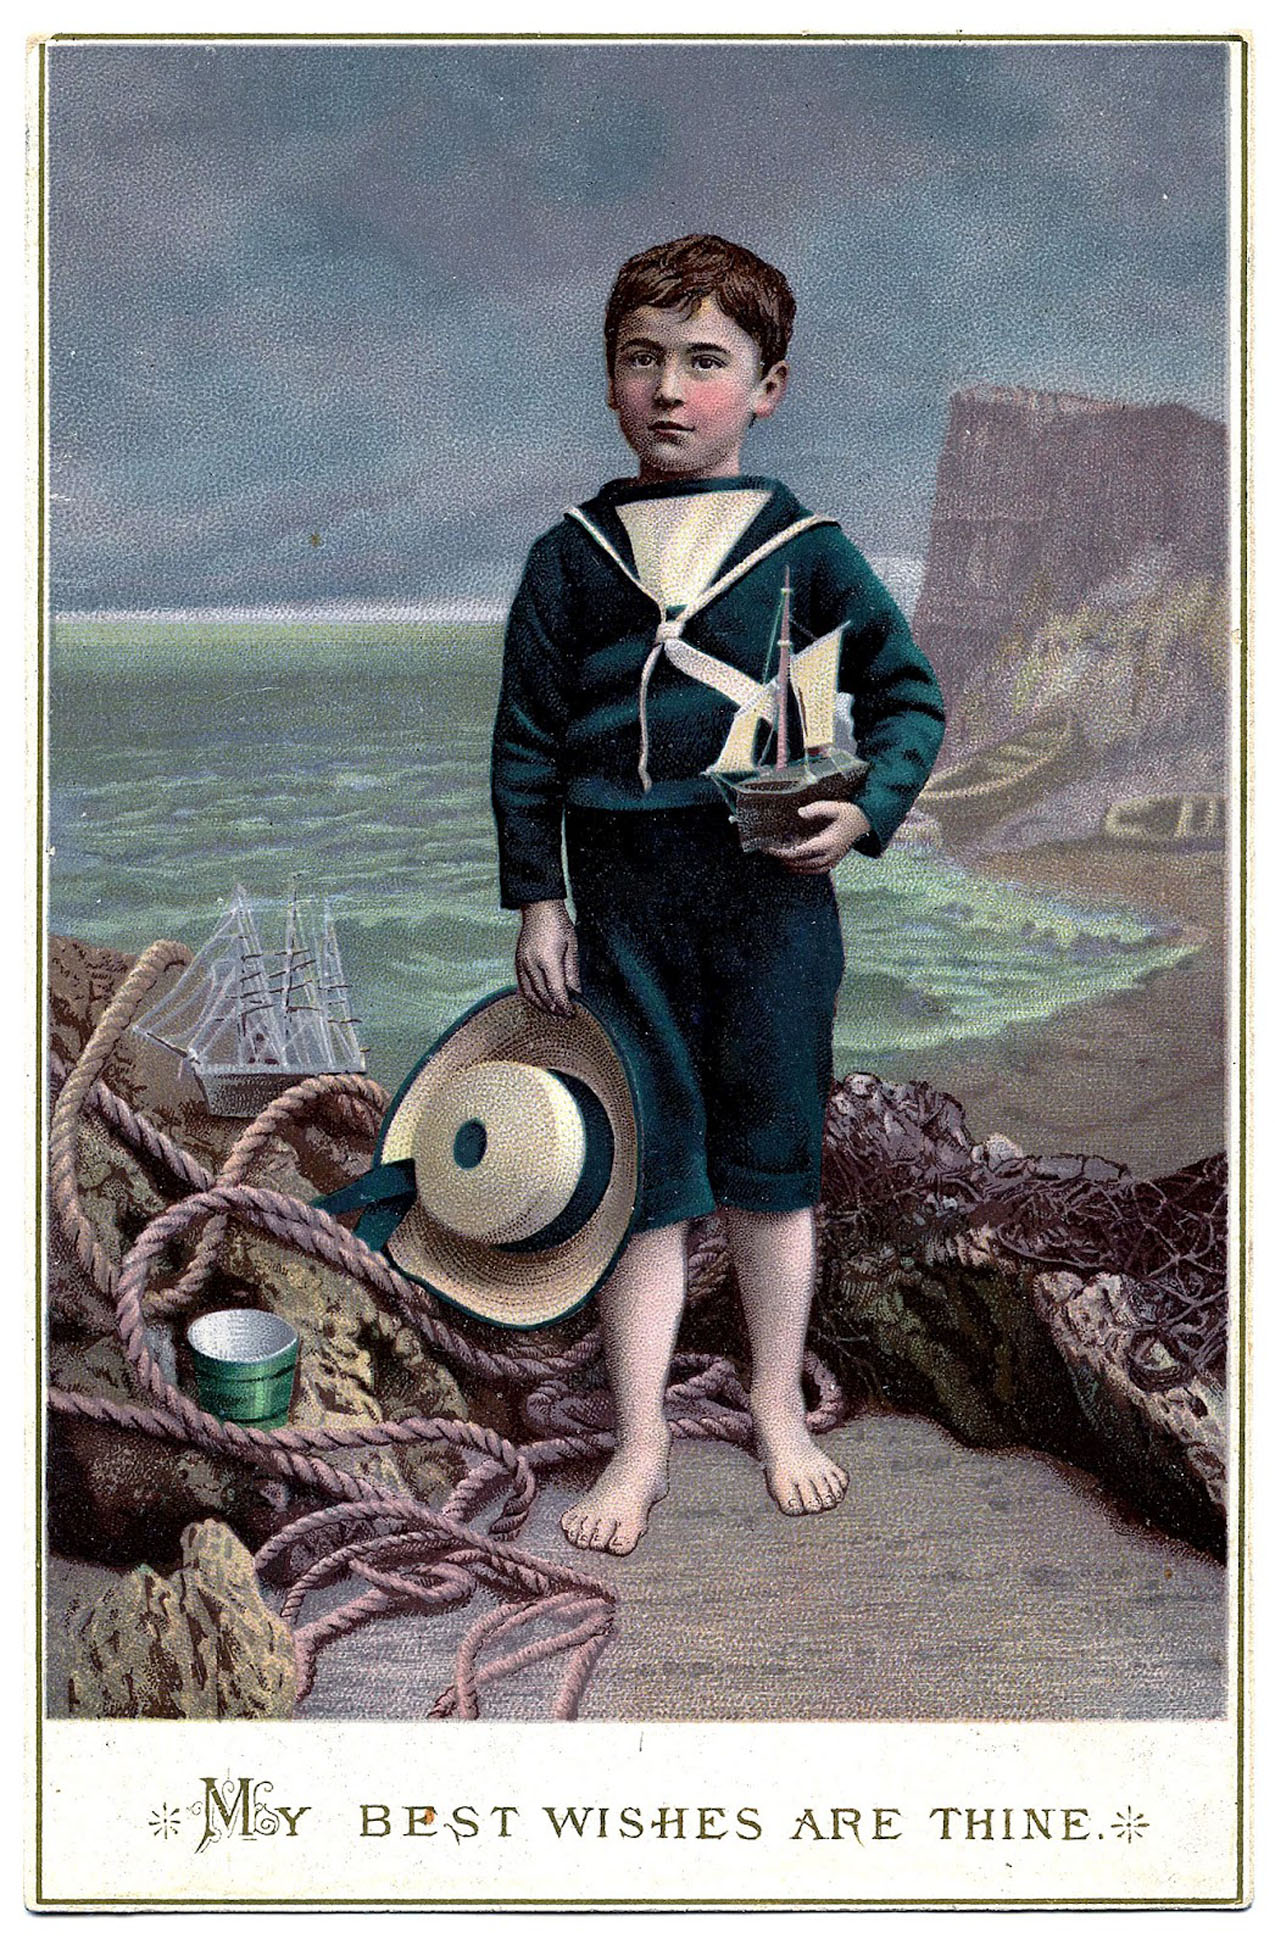 12 Vintage Sailor Boy Images In Color!